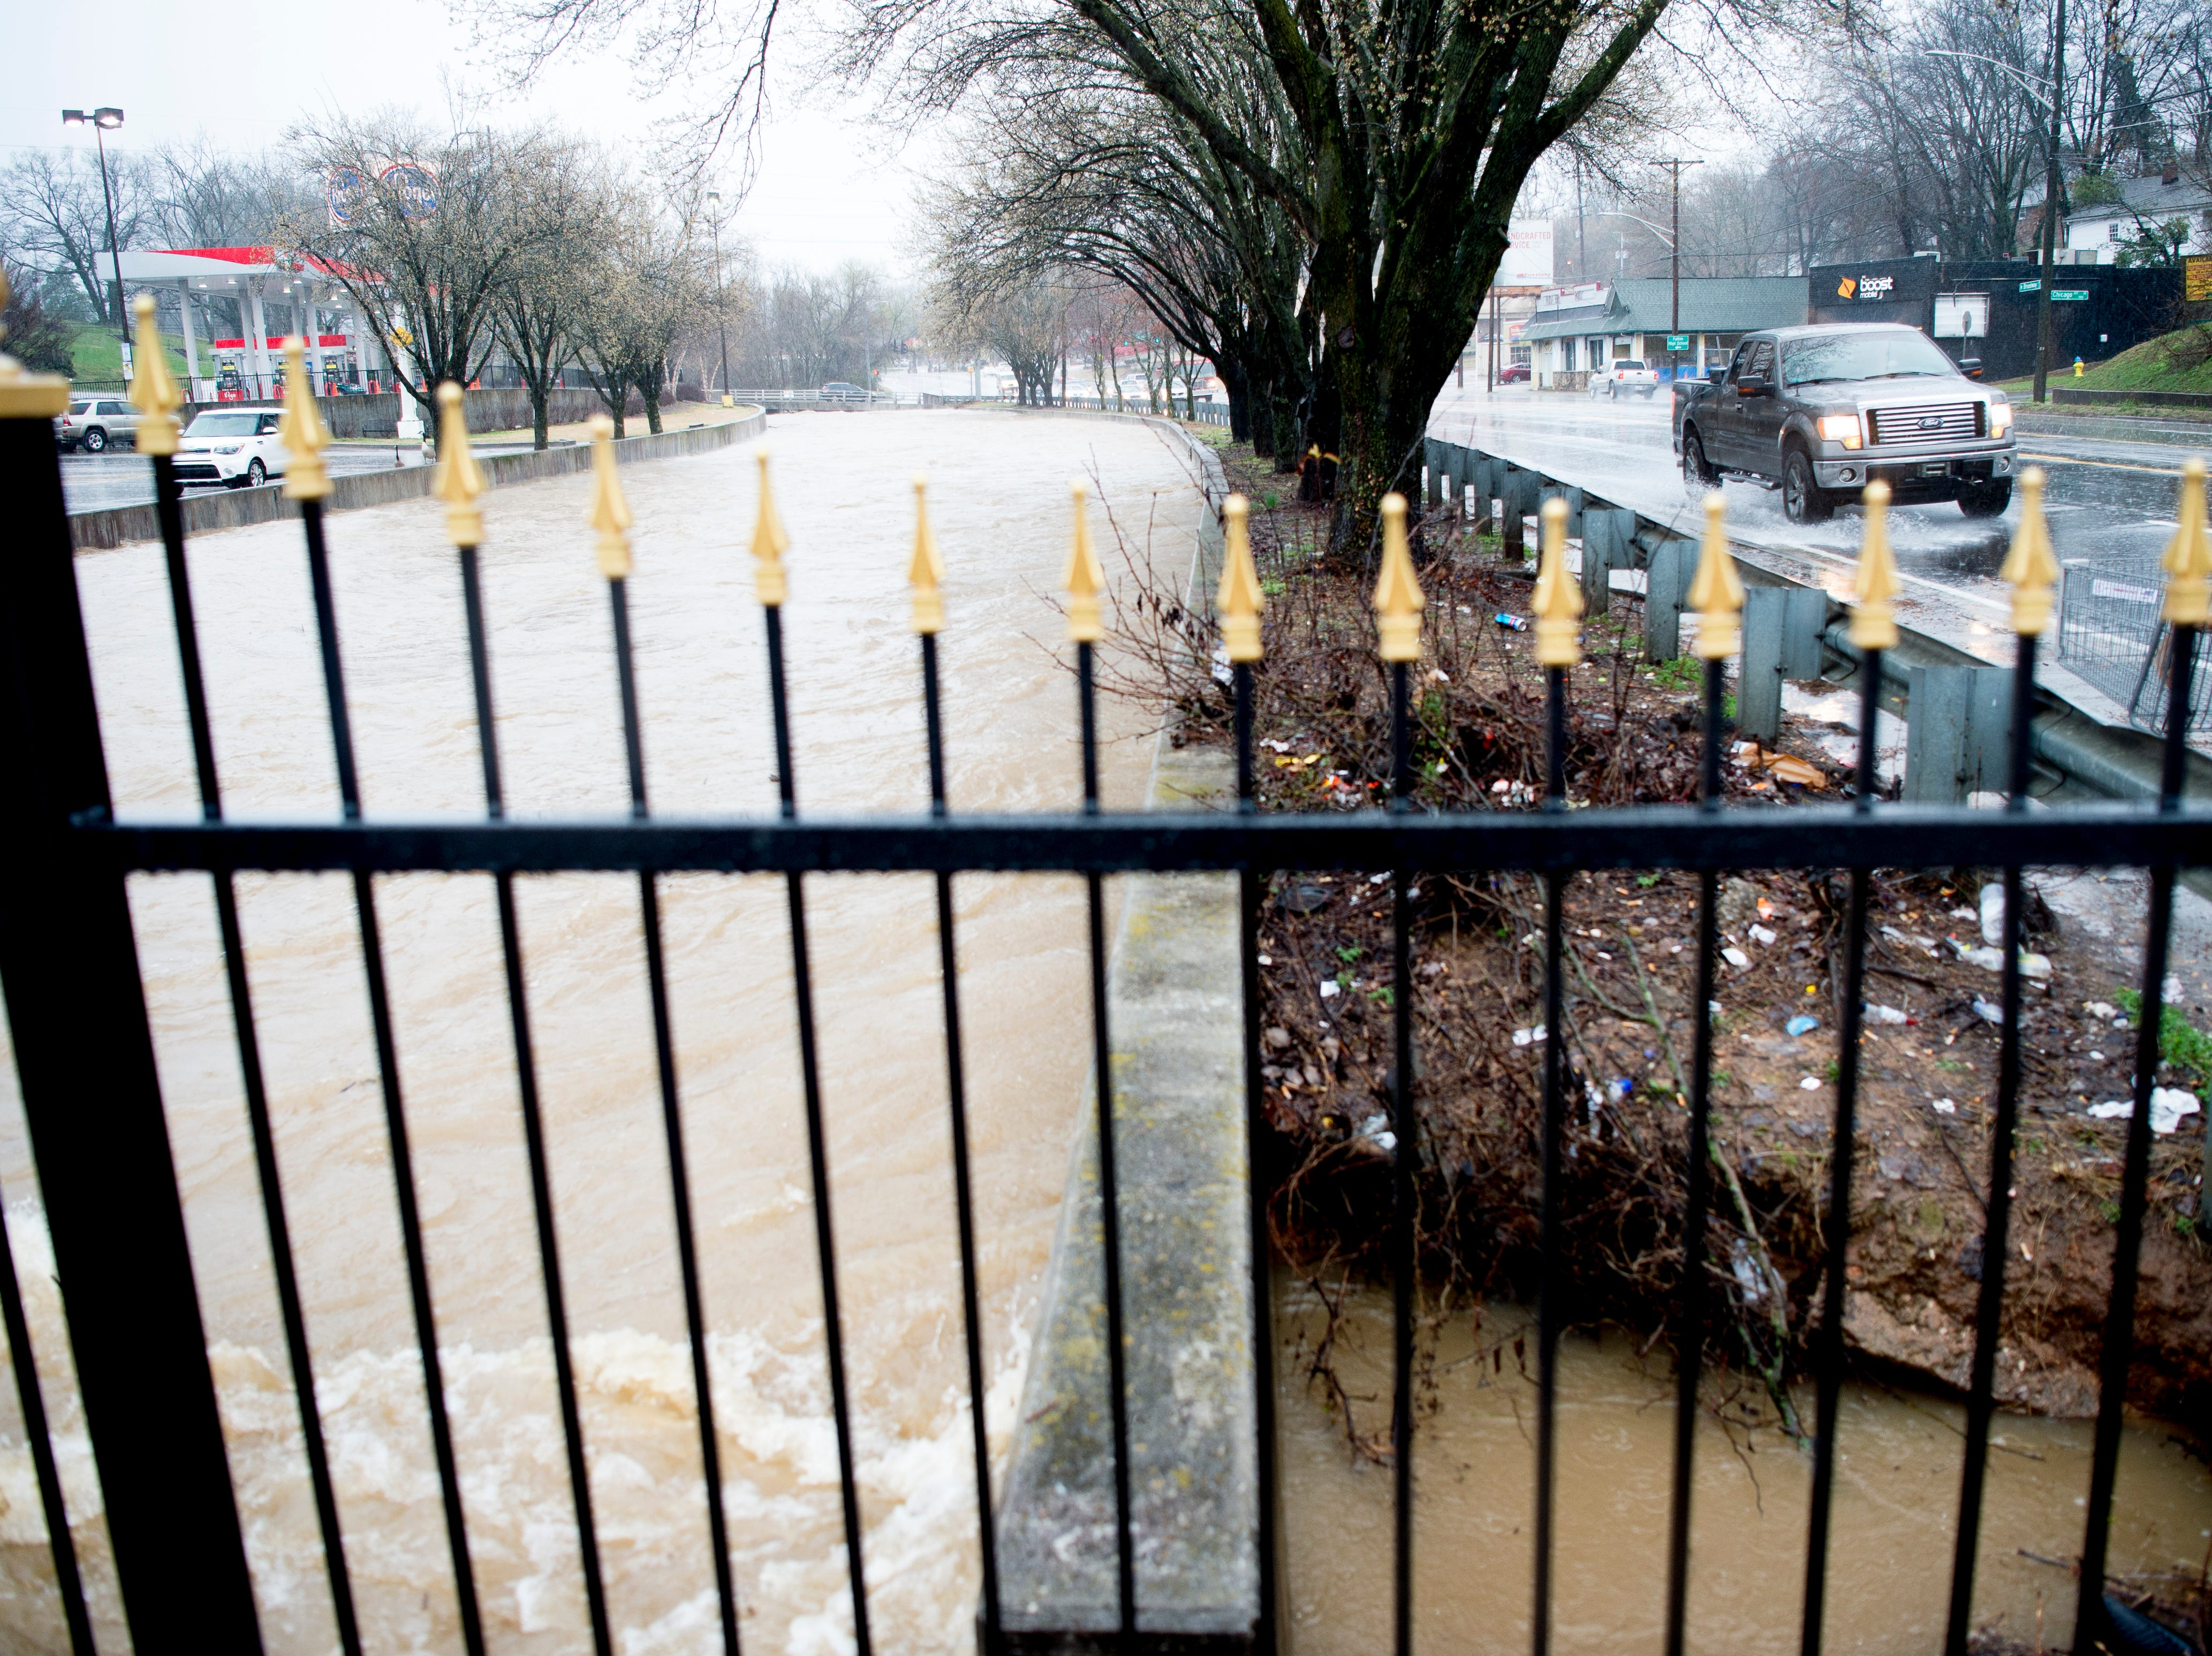 The First Creek overflows as seen from the Broadway Kroger during a heavy rainstorm in Knoxville, Tennessee on Saturday, February 23, 2019. The Knoxville area could see between 2 and 3 inches through the weekend.